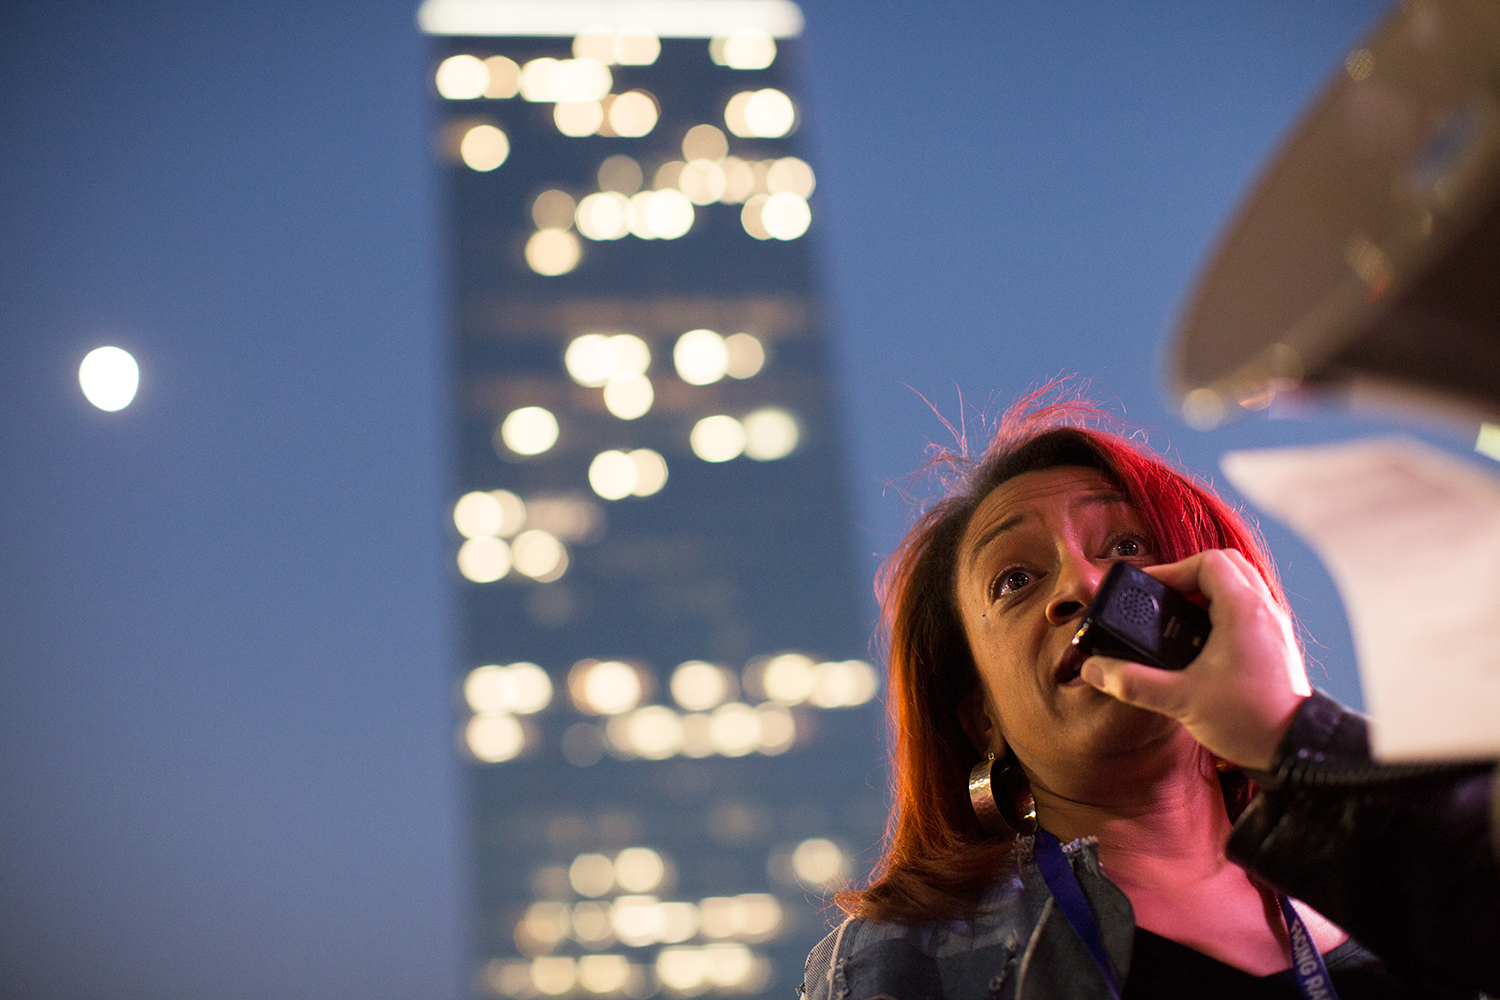 Woman speaks at anti-Trump/antihate racial justice rally across the street from CNN Center during the Facing Race 2016 conference, Atlanta, GA, 10 November